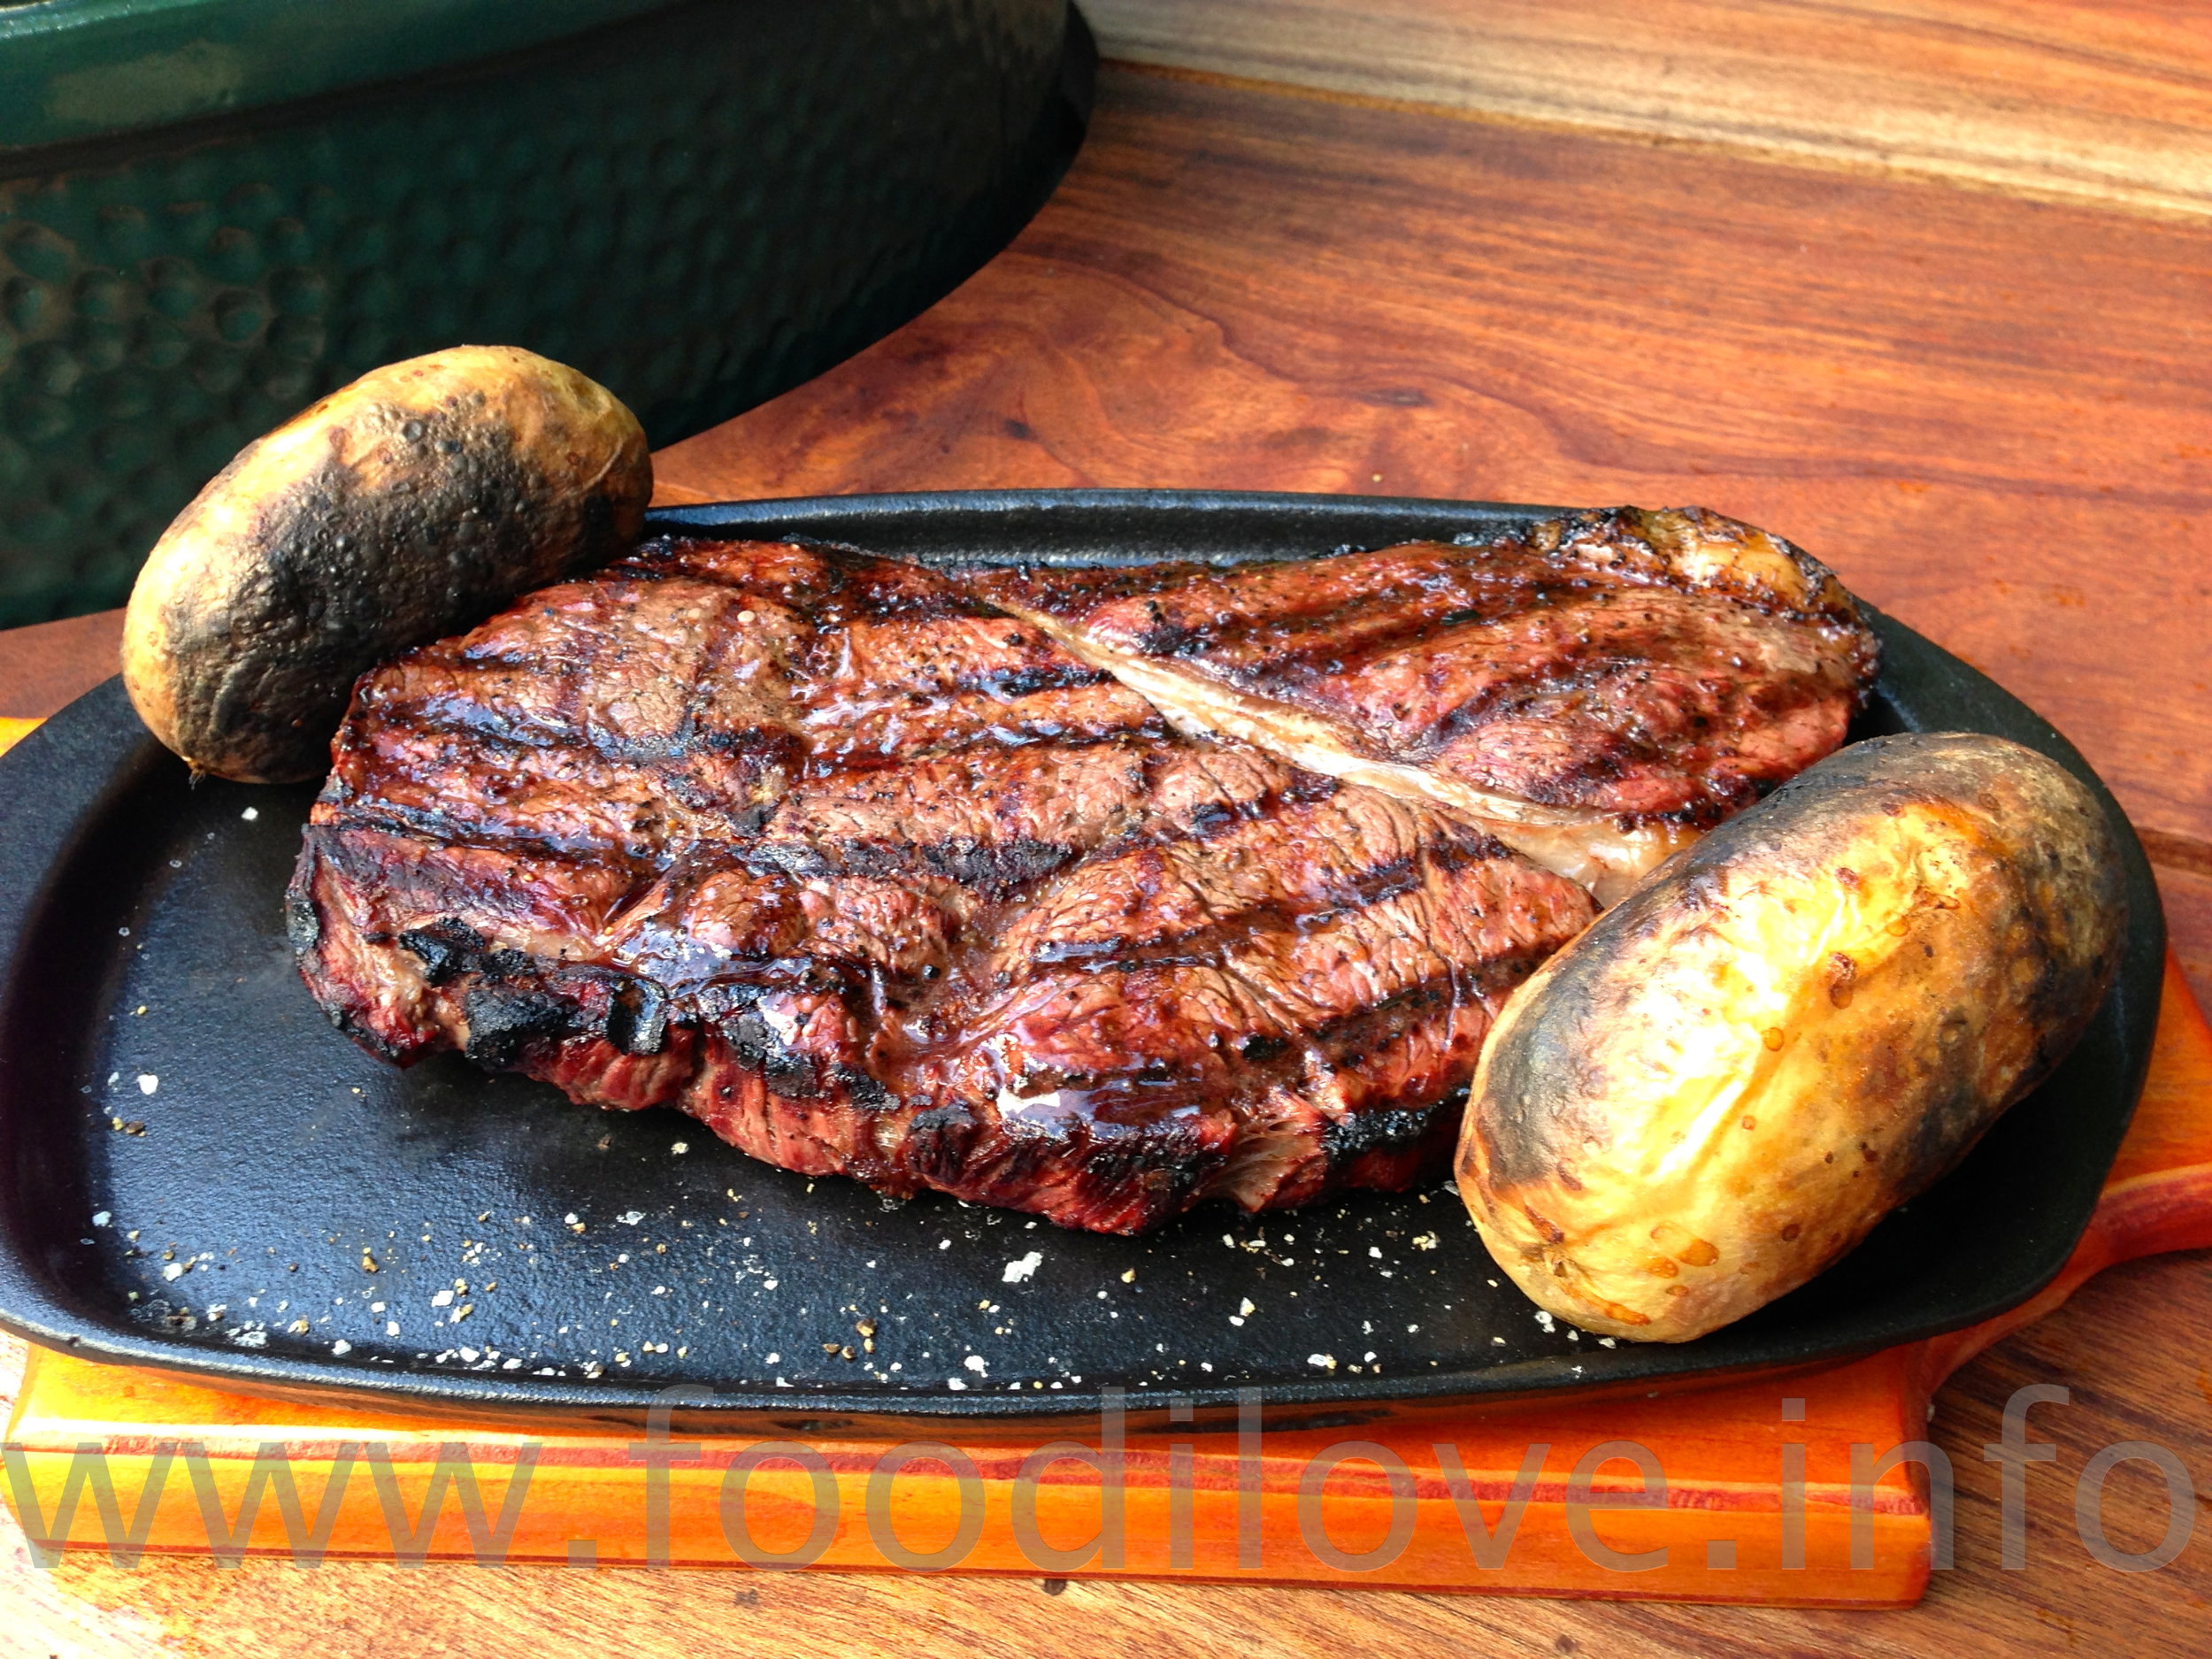 Blue Bull Steak, 850g of Black Gold Rump Steak